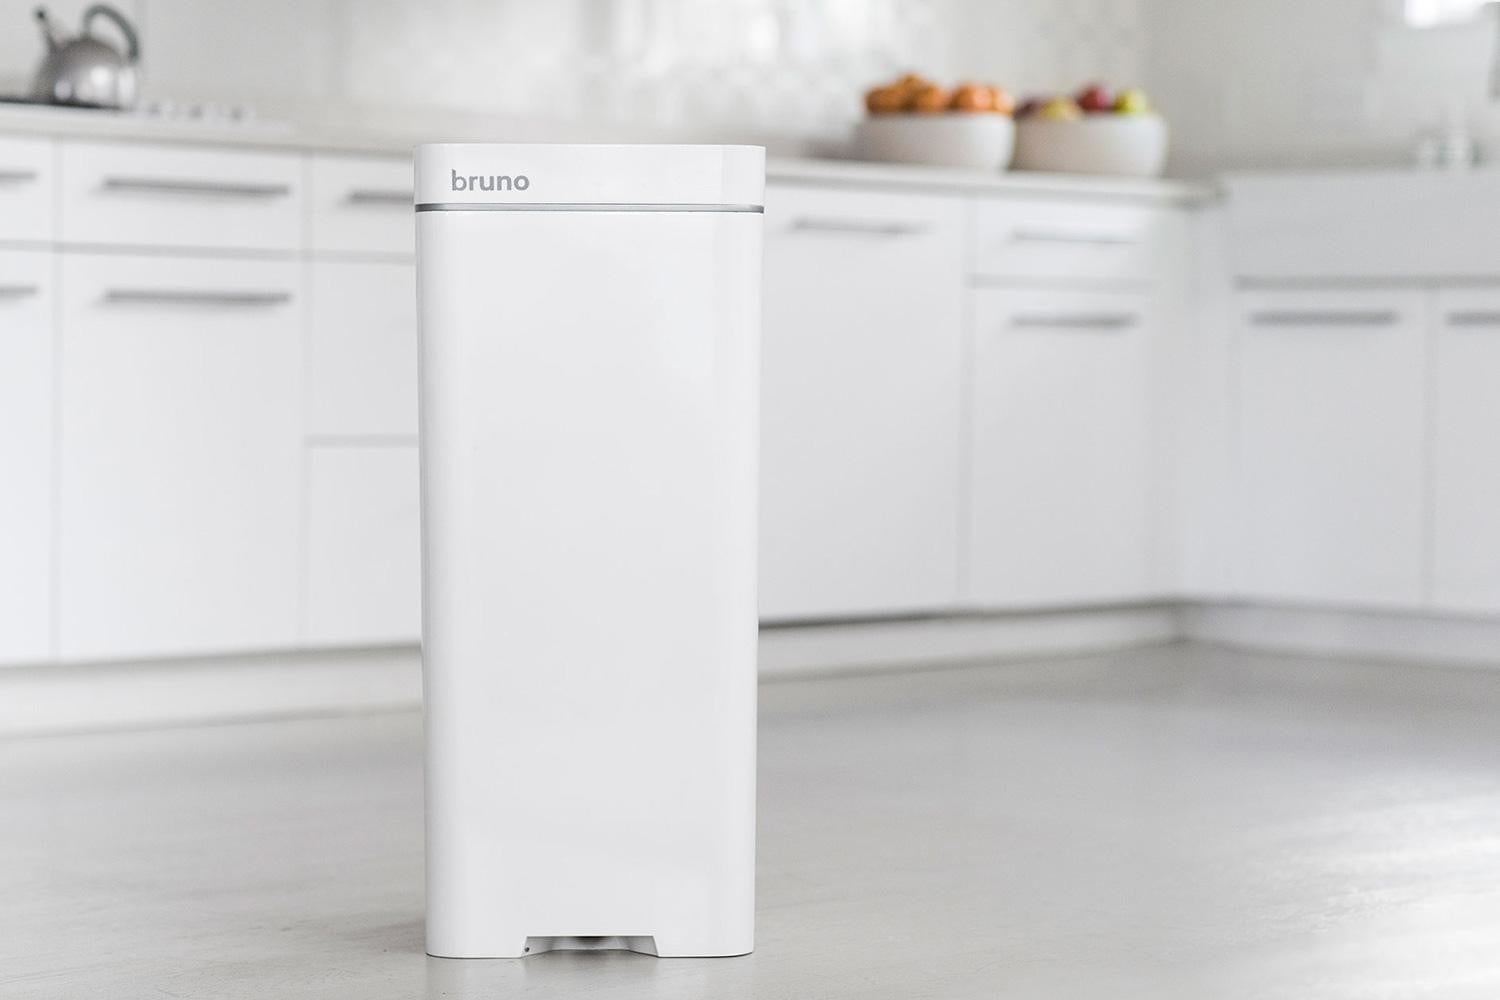 The Bruno Is a Garbage Can with a Built-In Vacuum   Digital Trends